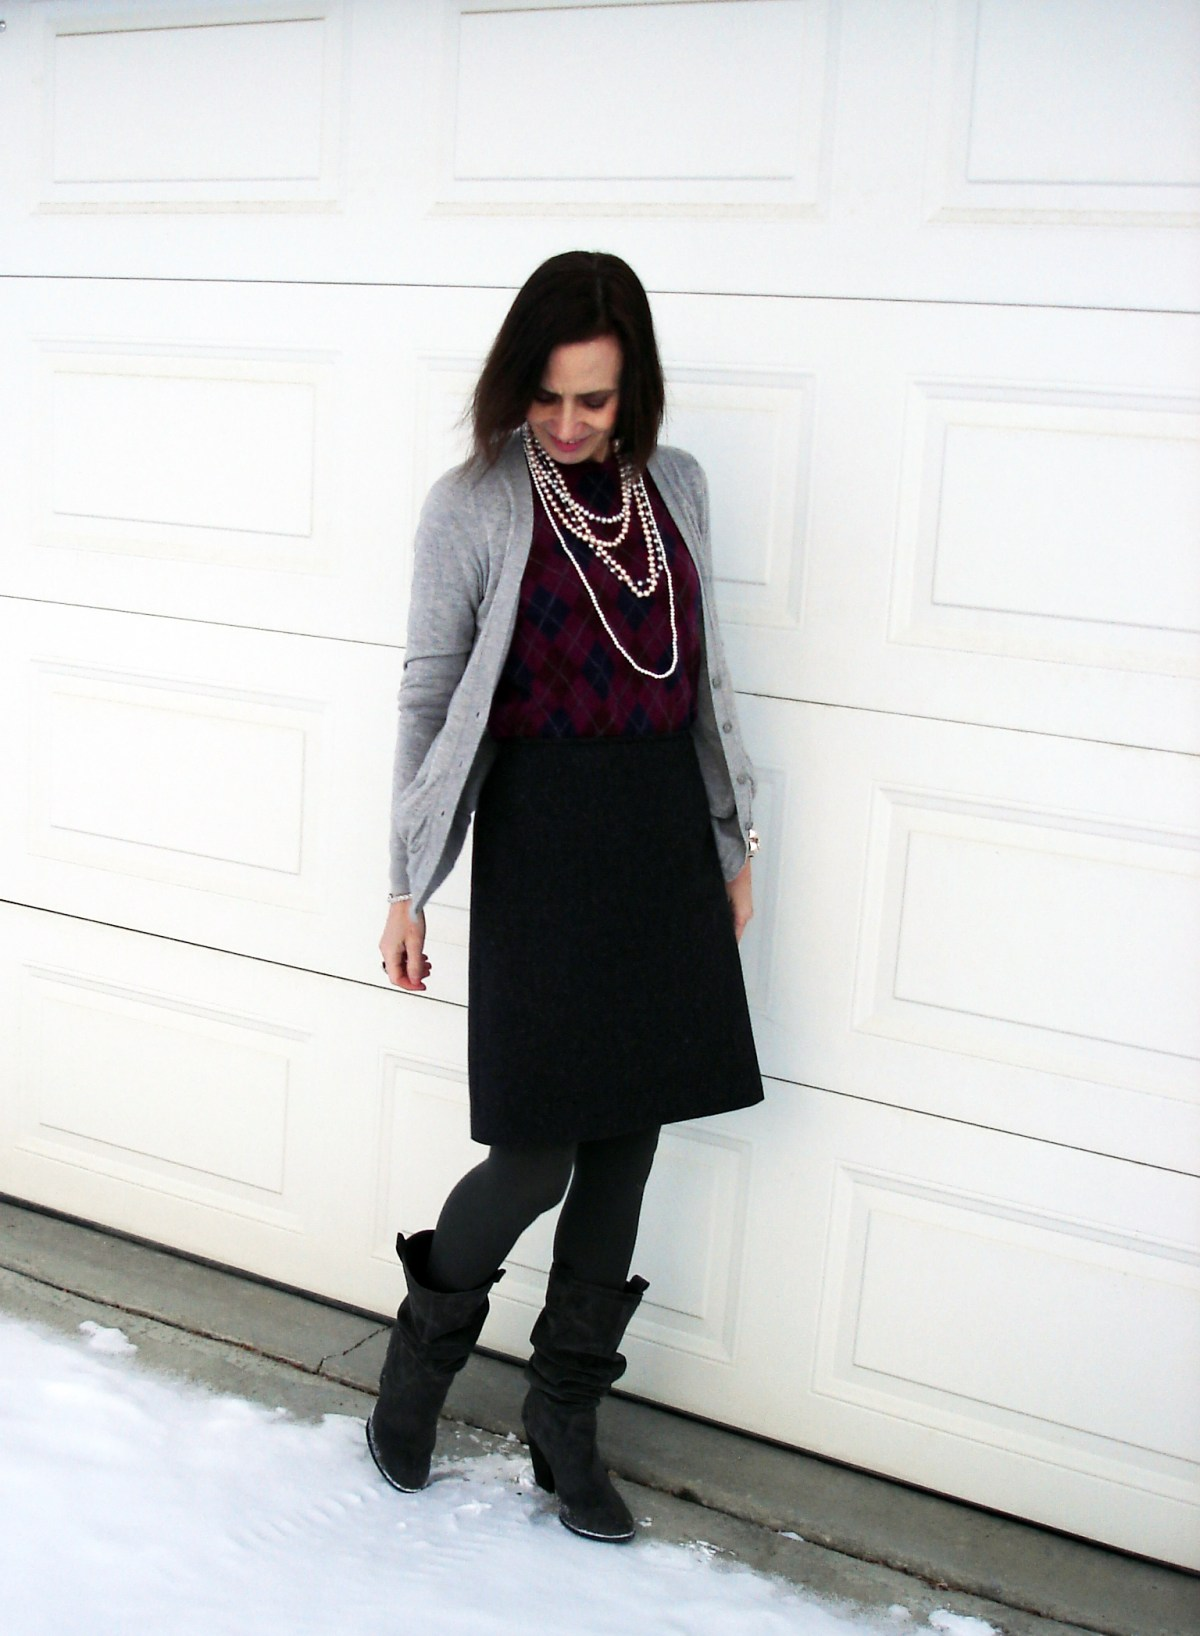 #fashionover50 woman in winter work outfit with faux twinset